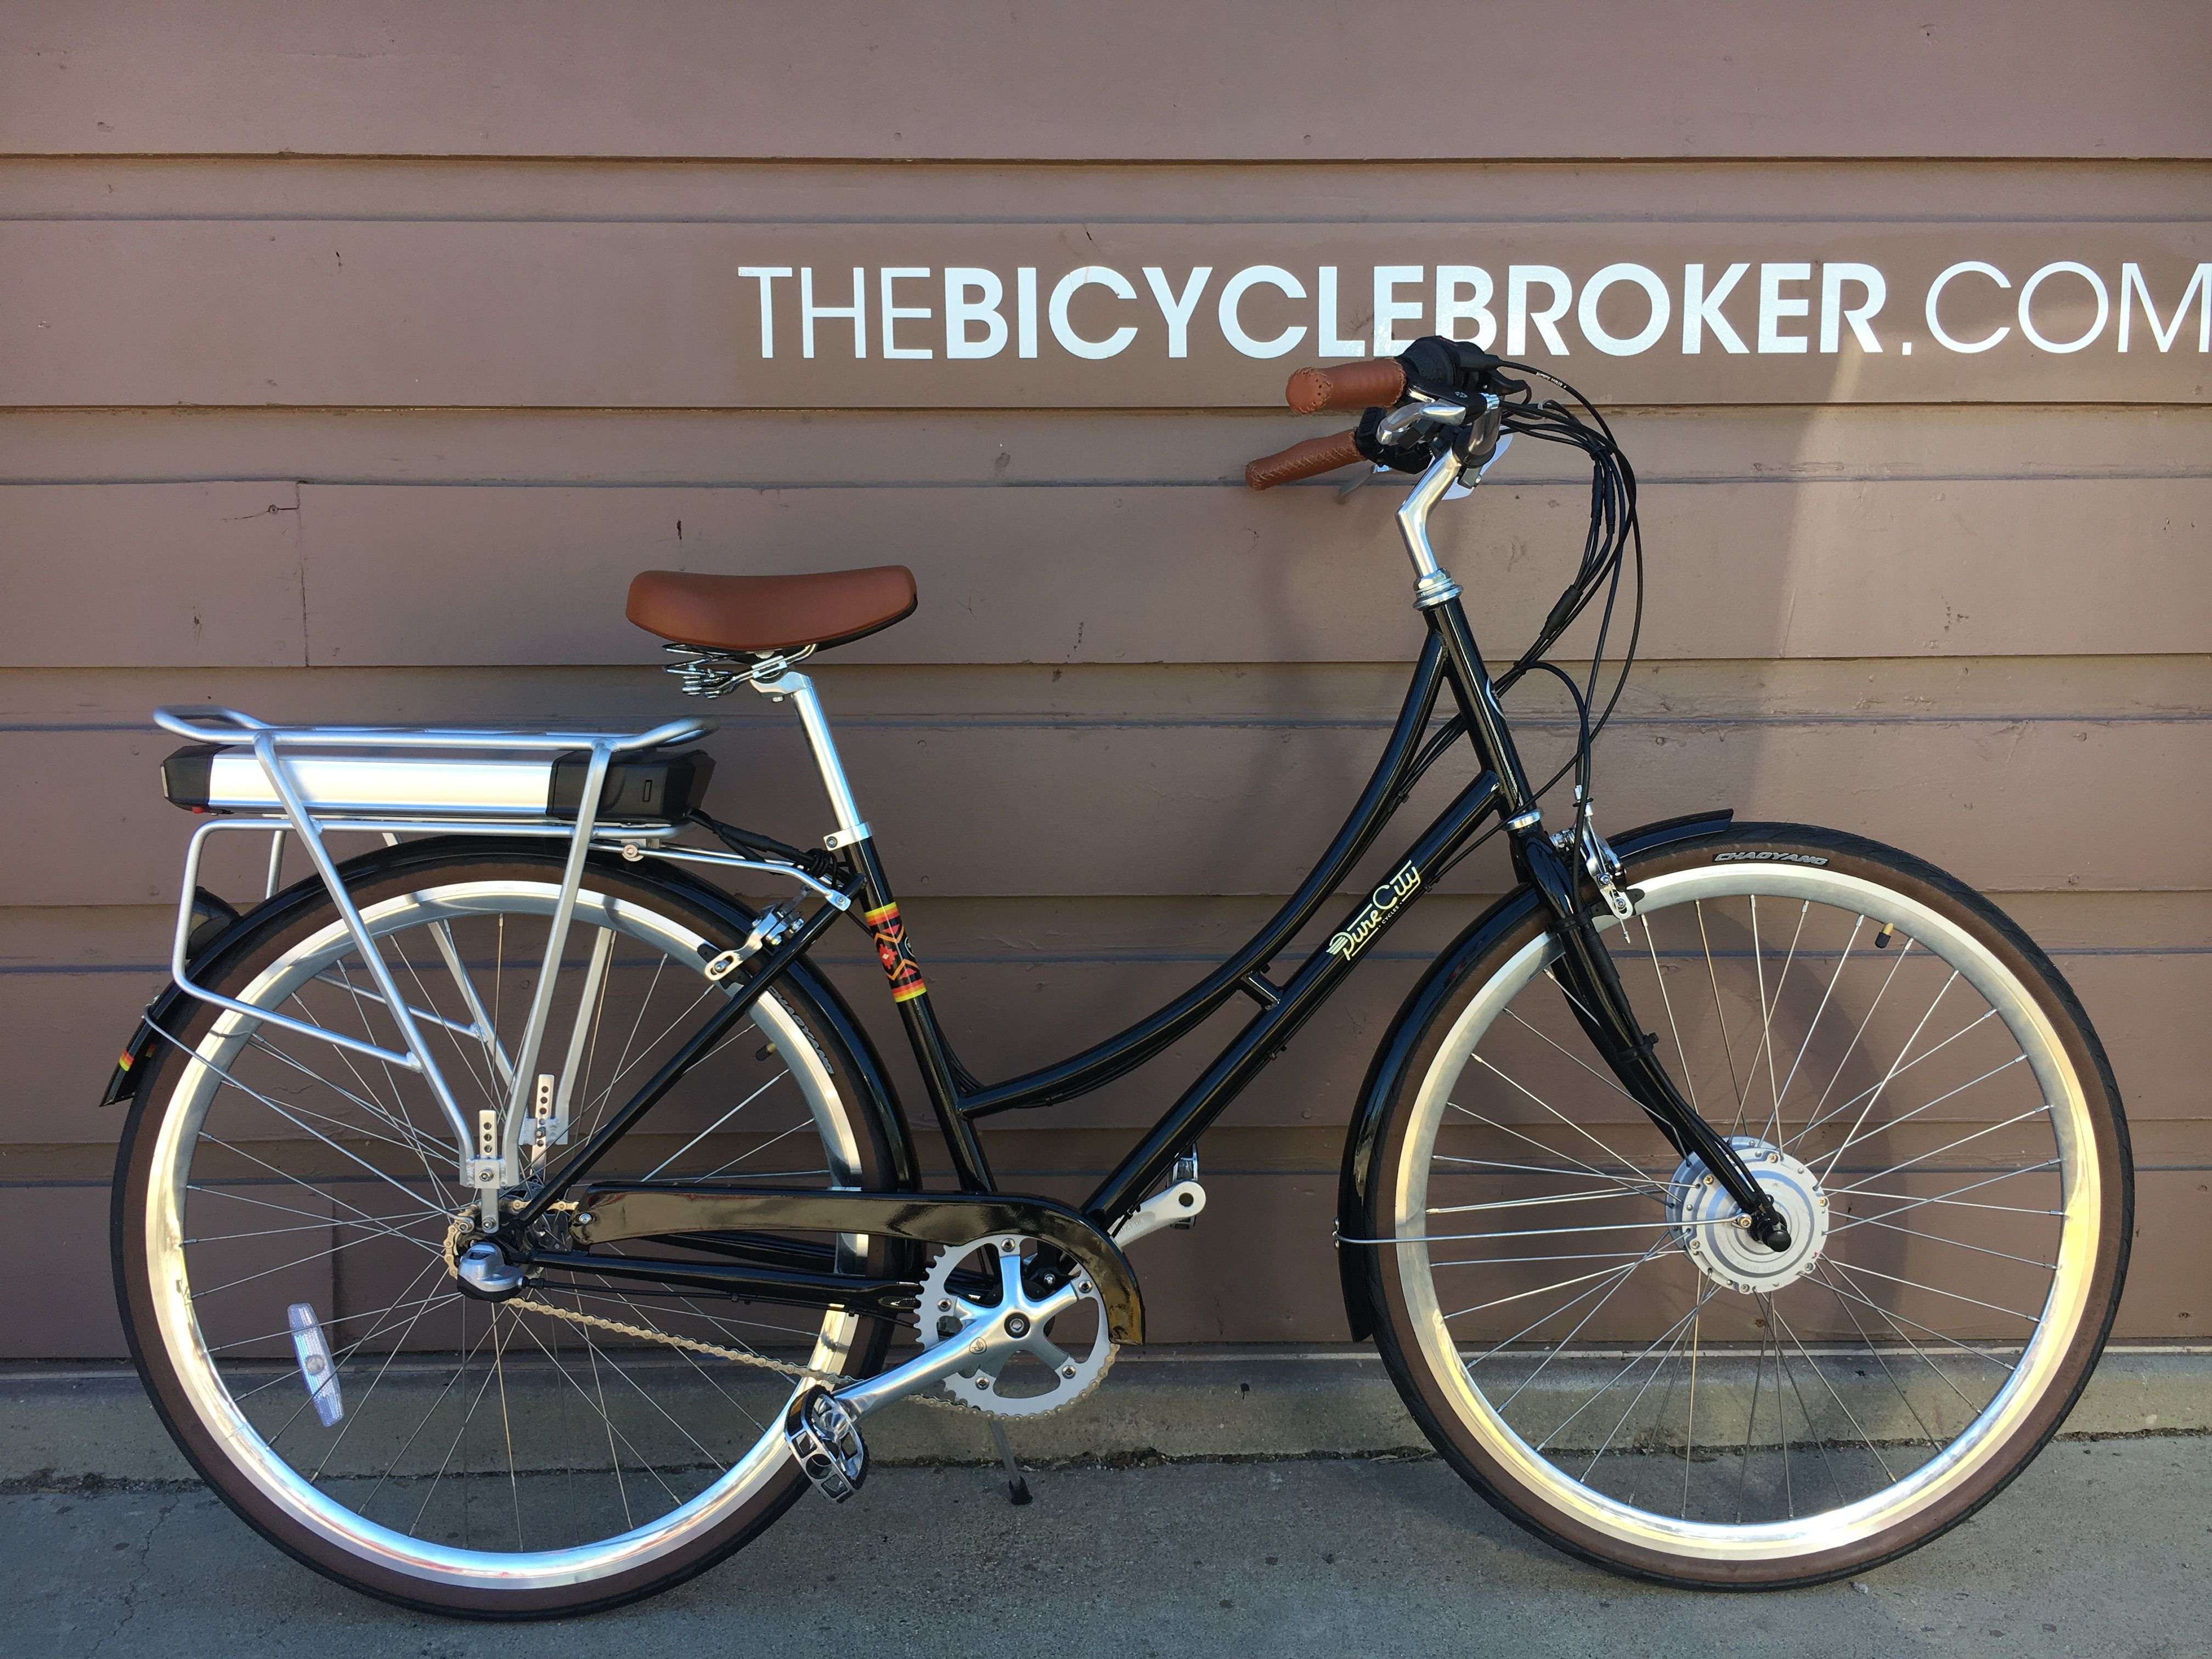 Ebo Cruiser Electric Bike Conversion Kit Installed On A Pure City Step Through Electric Bike Conversion Electric Bike Bike